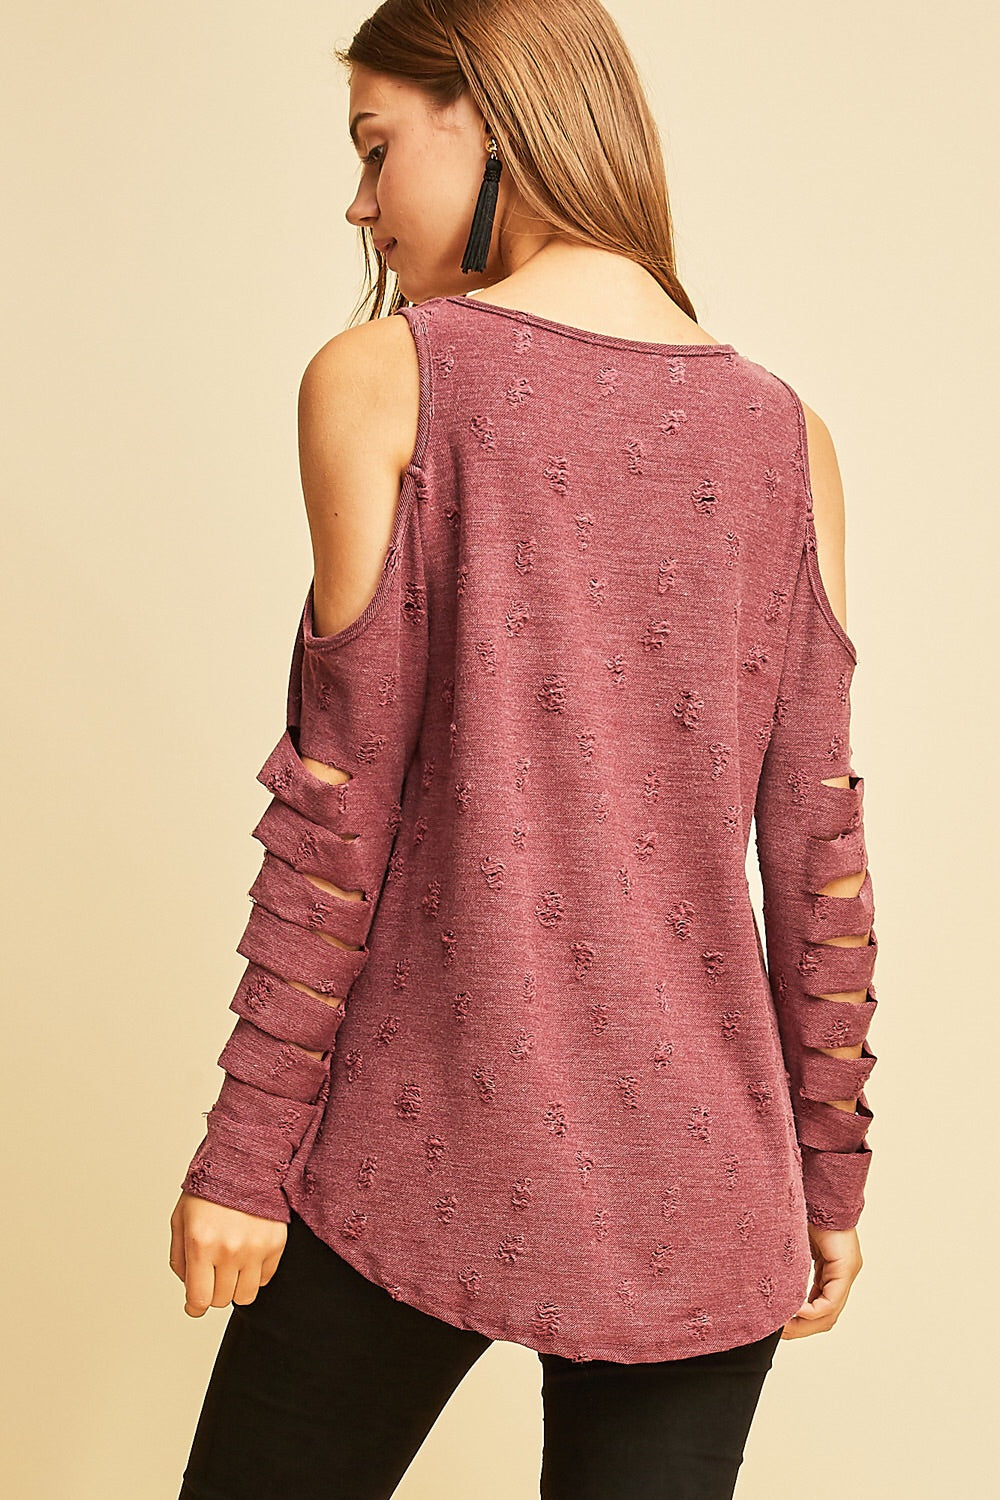 Berrylicious Cold Shoulder Top